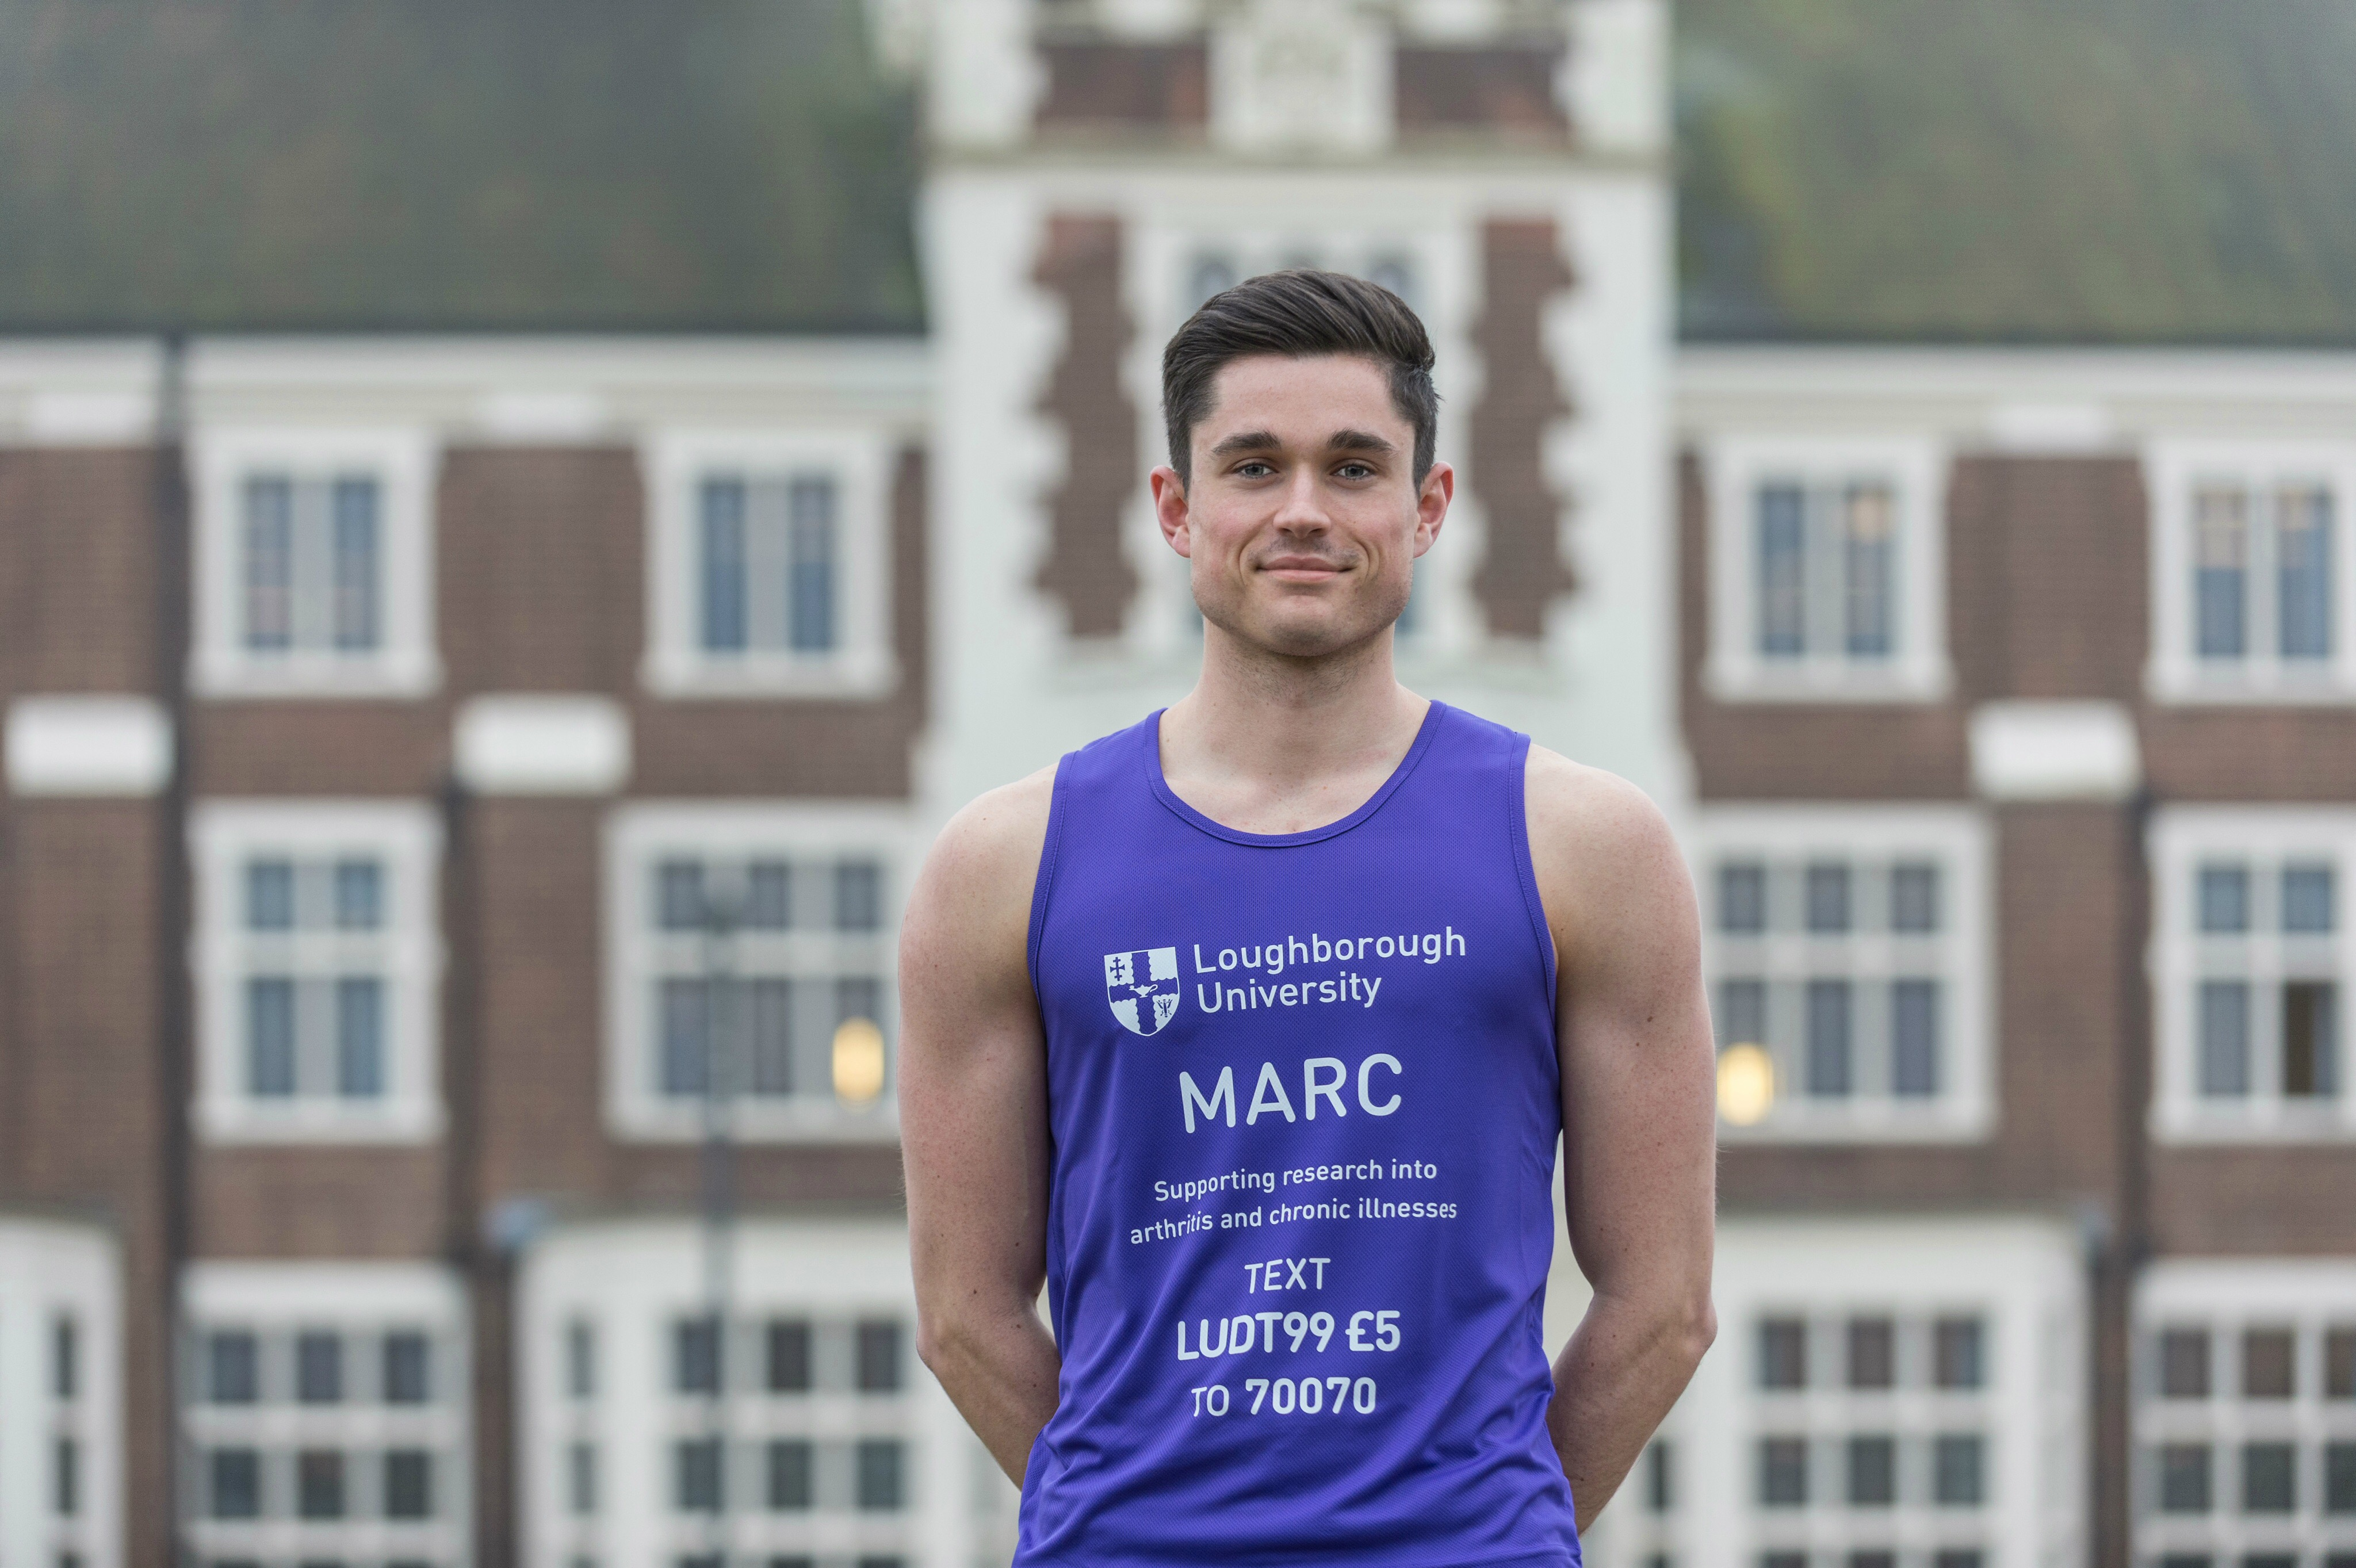 Staff member and graduate to run London Marathon for Loughborough research